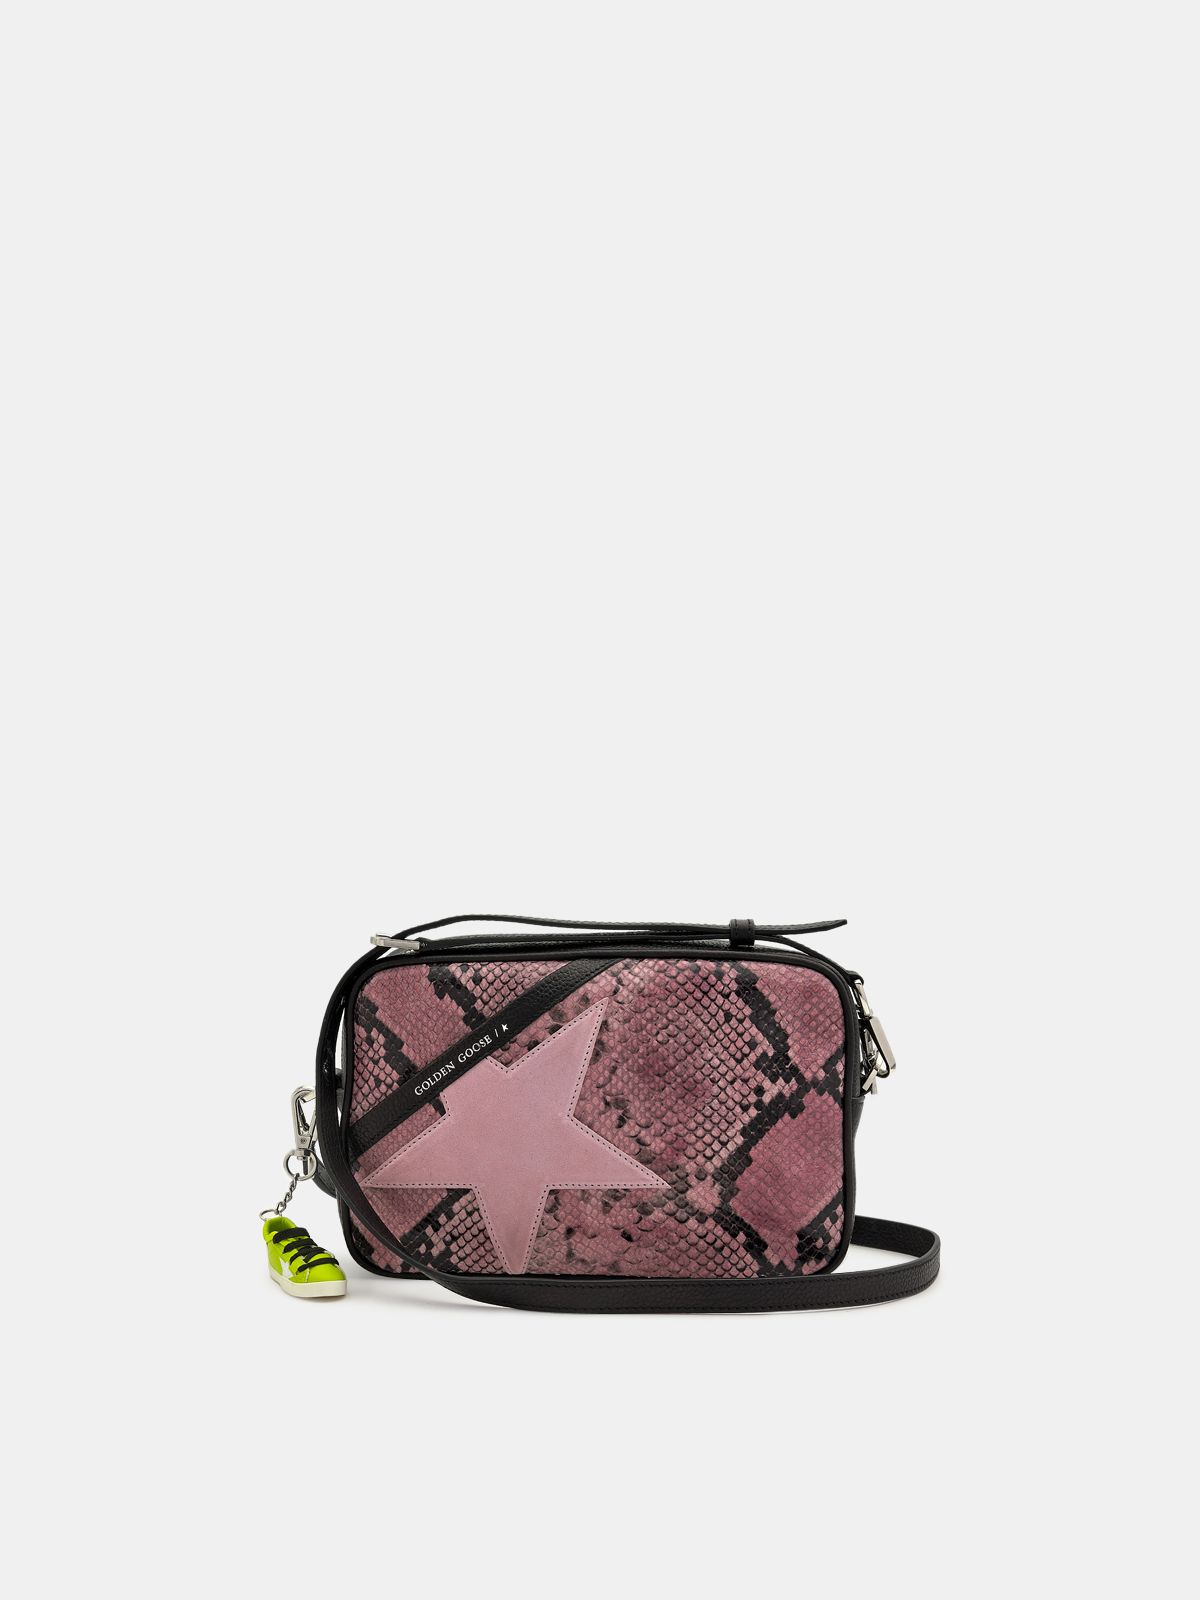 Borsa Star Bag in pelle pitonata rosa